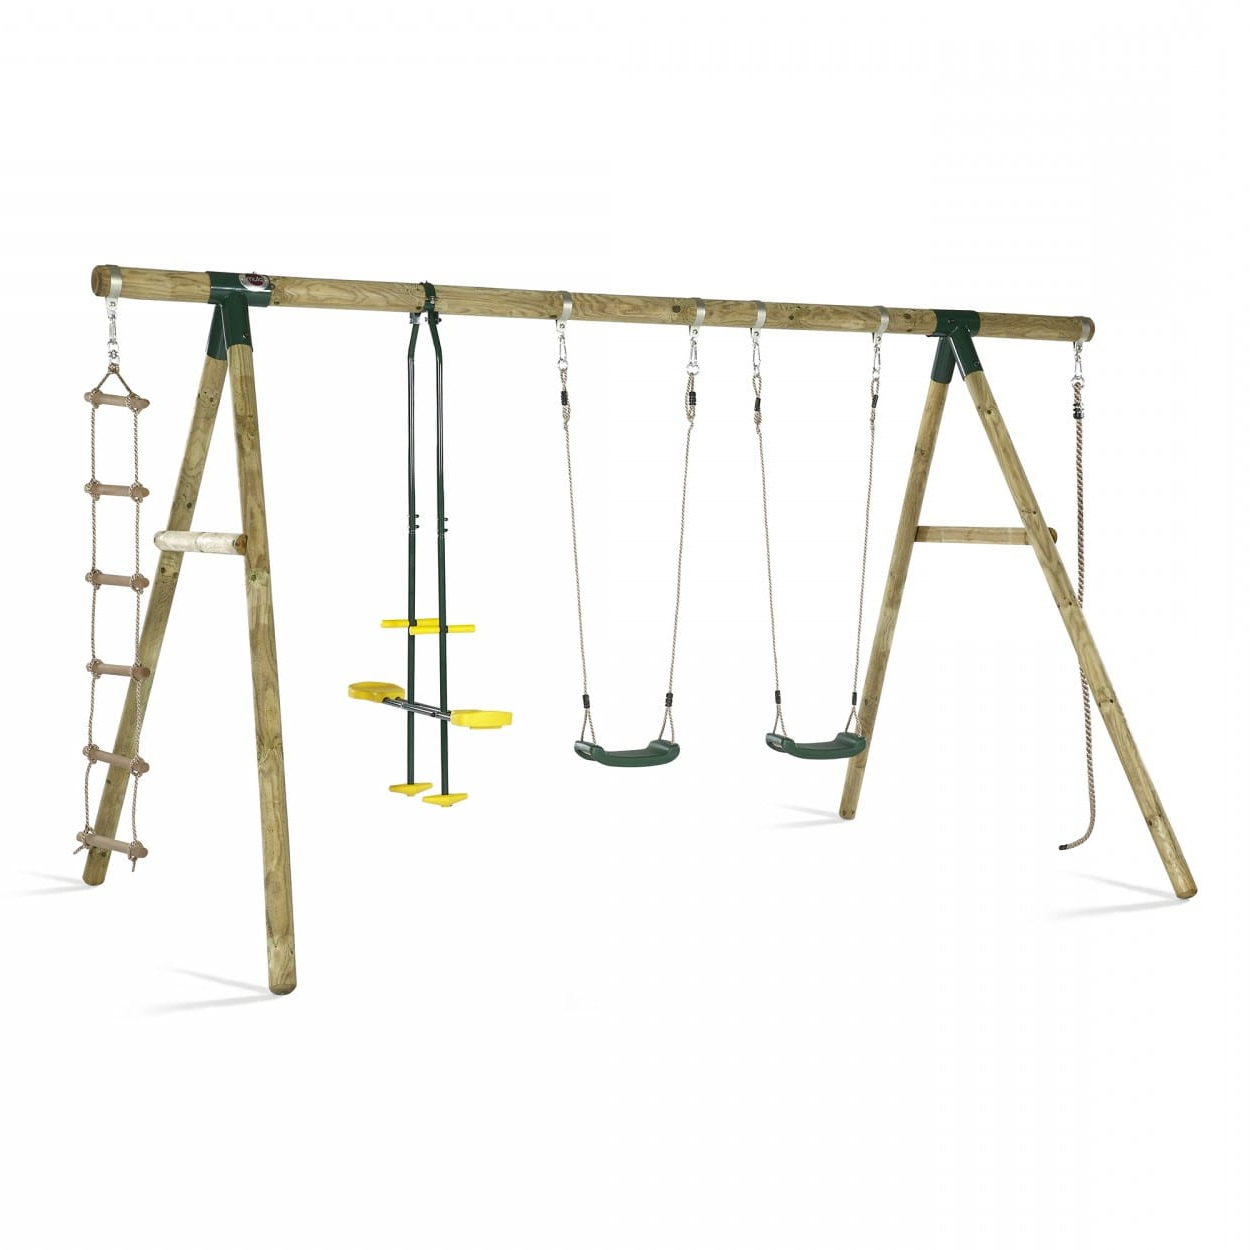 Dual Rider Glider Swings With Soft Touch Rope Regarding Most Popular Plum® Orang Utan® Wooden Garden Swing Set (View 5 of 25)